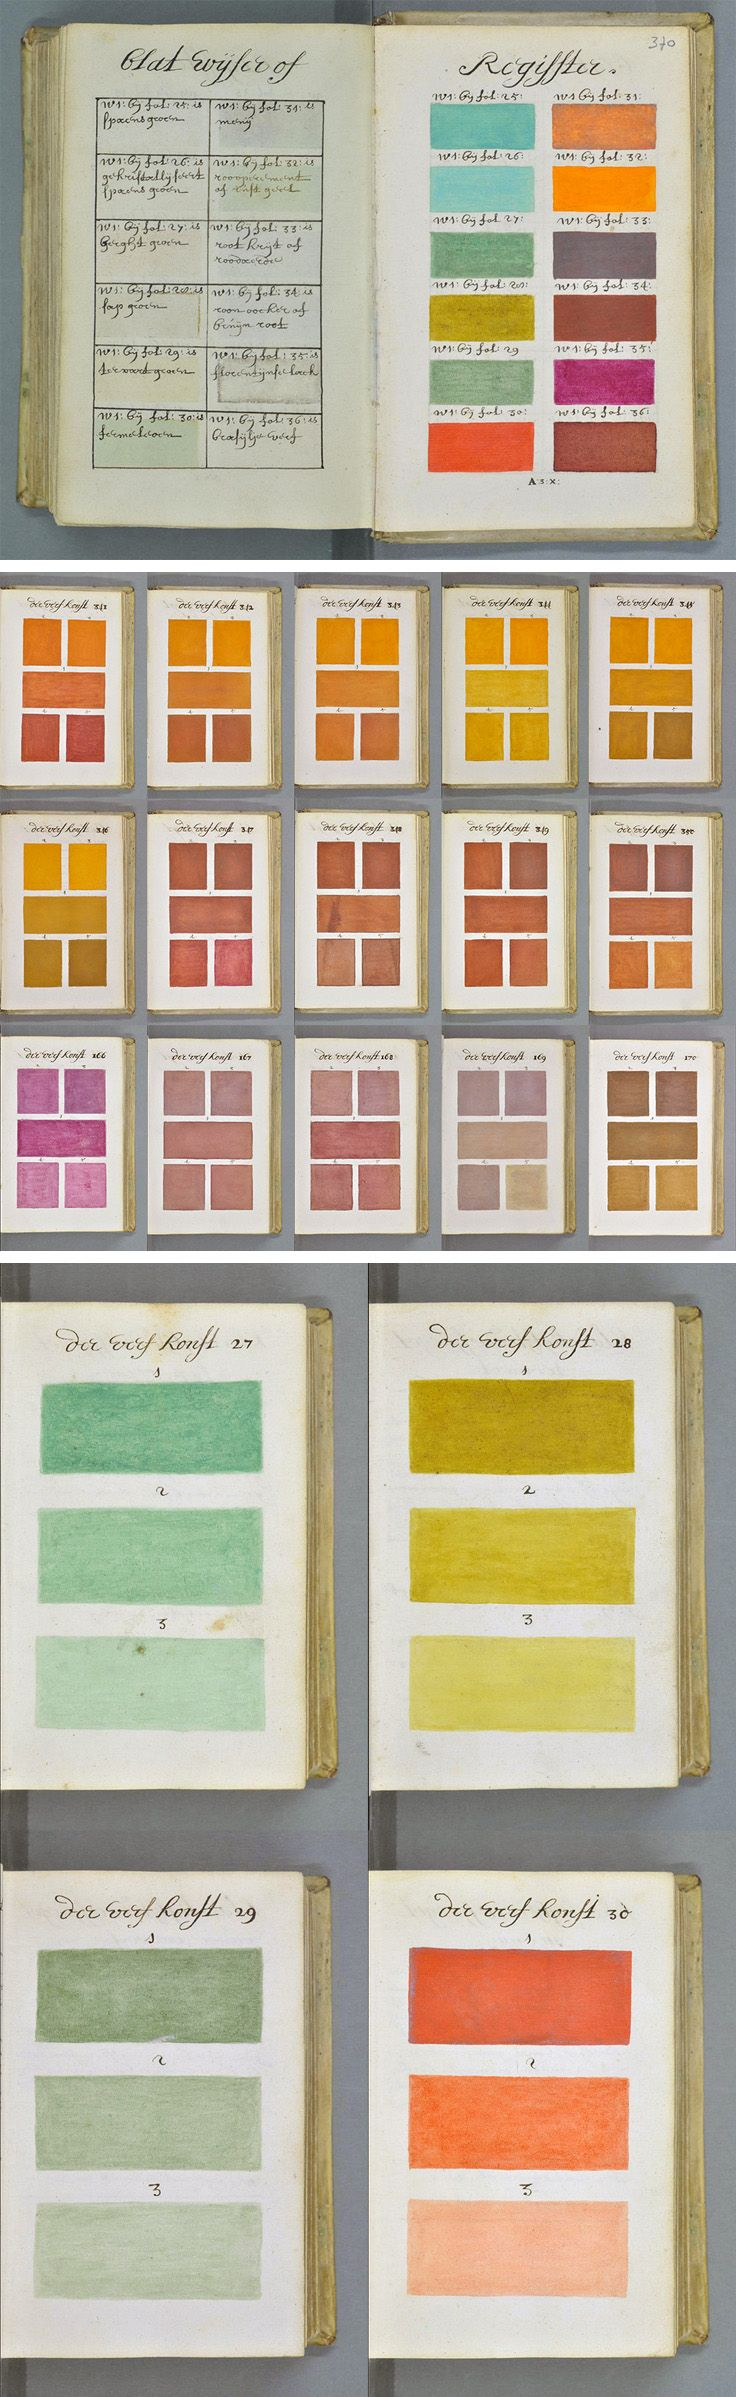 Book color scheme - 271 Years Before Pantone An Artist In 1692 Known Only As A Boogert Mixed And Described Every Color Imaginable In An Book